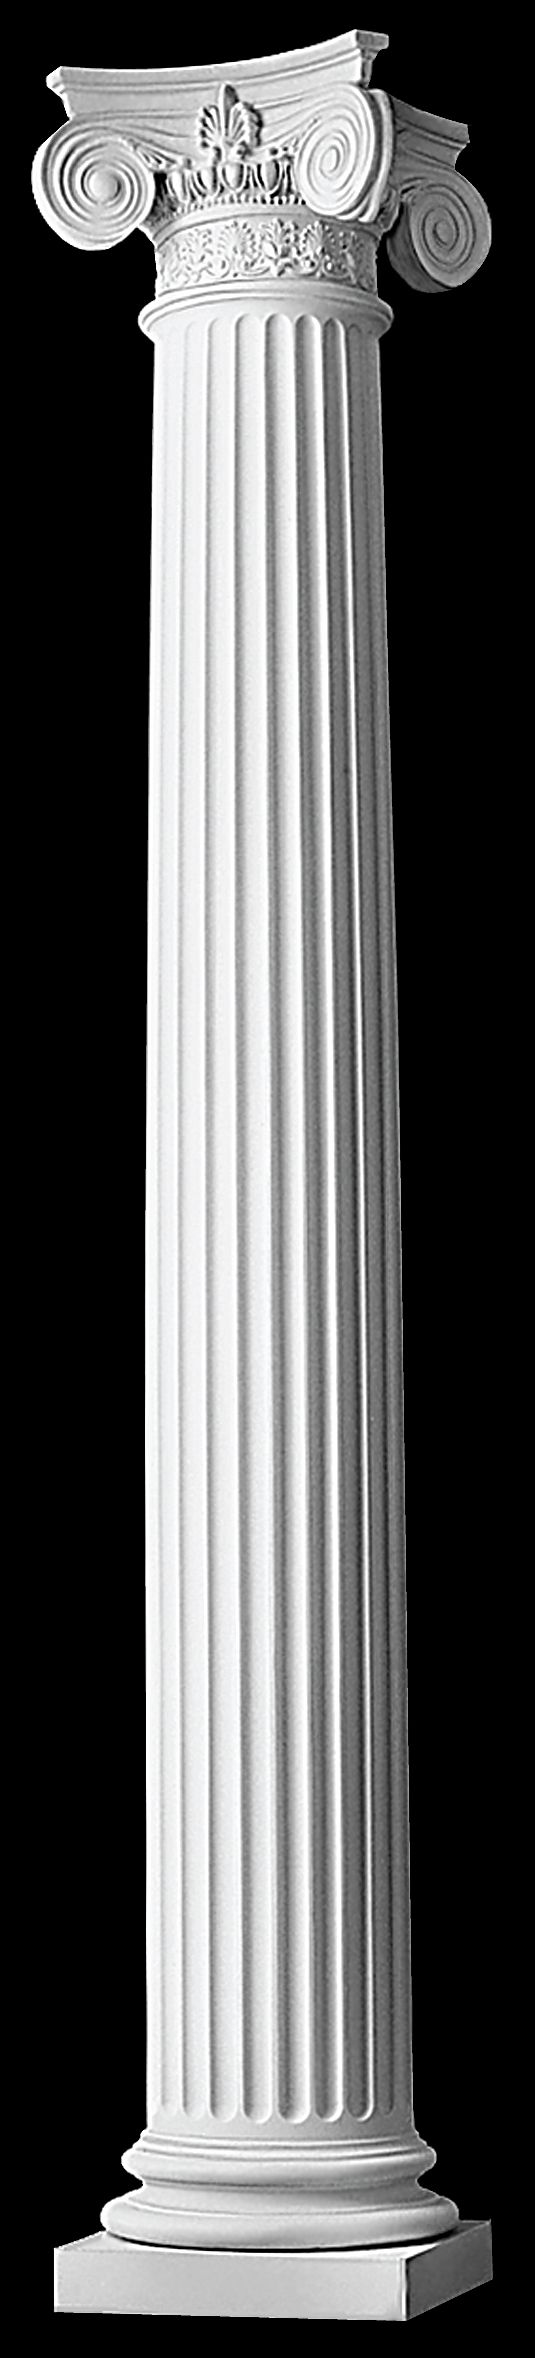 Composite Fiberglass Columns : The best composite columns ideas on pinterest column